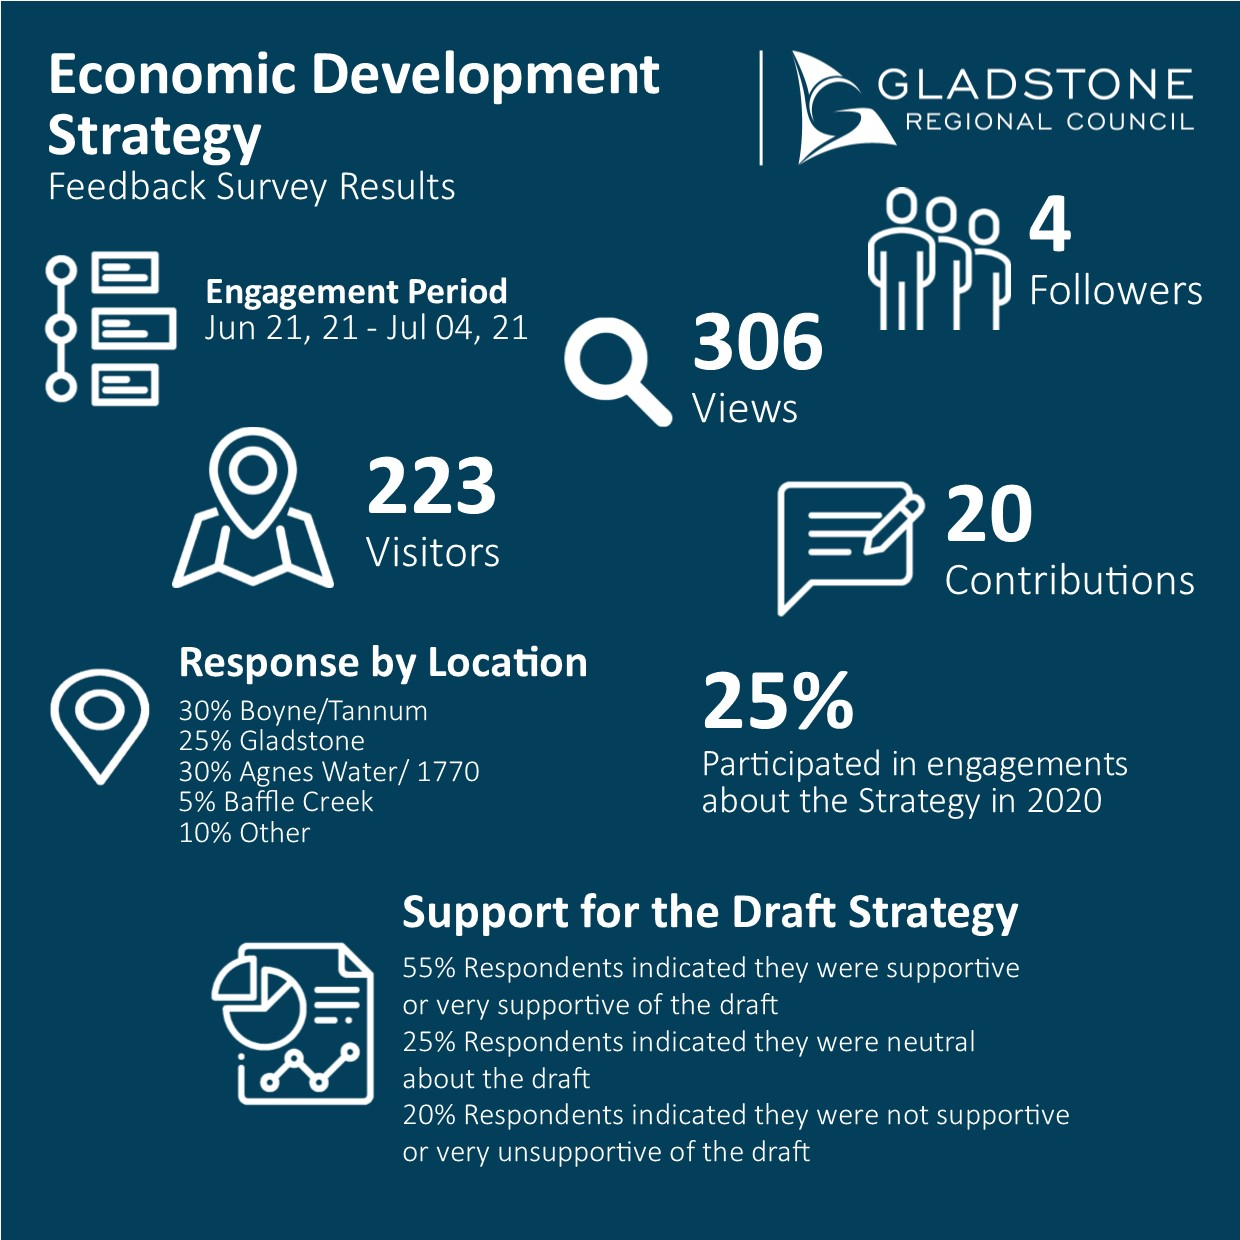 Feedback Survey report card - 20 Contributions, 55% supportive or very supportive of the draft, 25% neutral and 20% not supportive of very unsupportive of the draft.